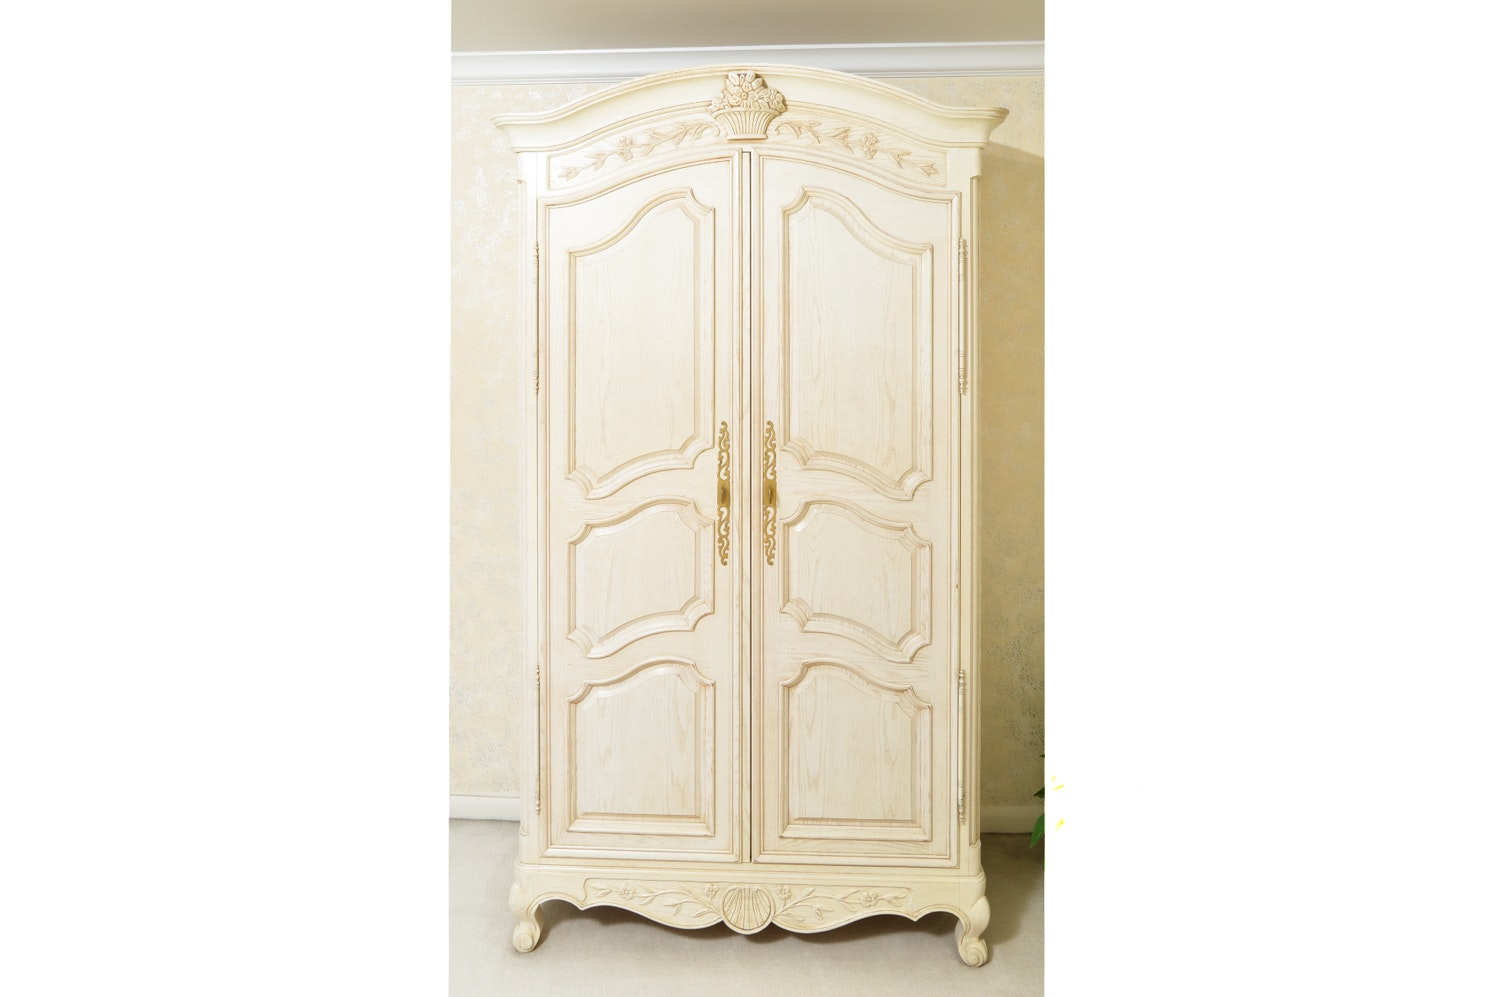 French Provincial Style Wardrobe by Century